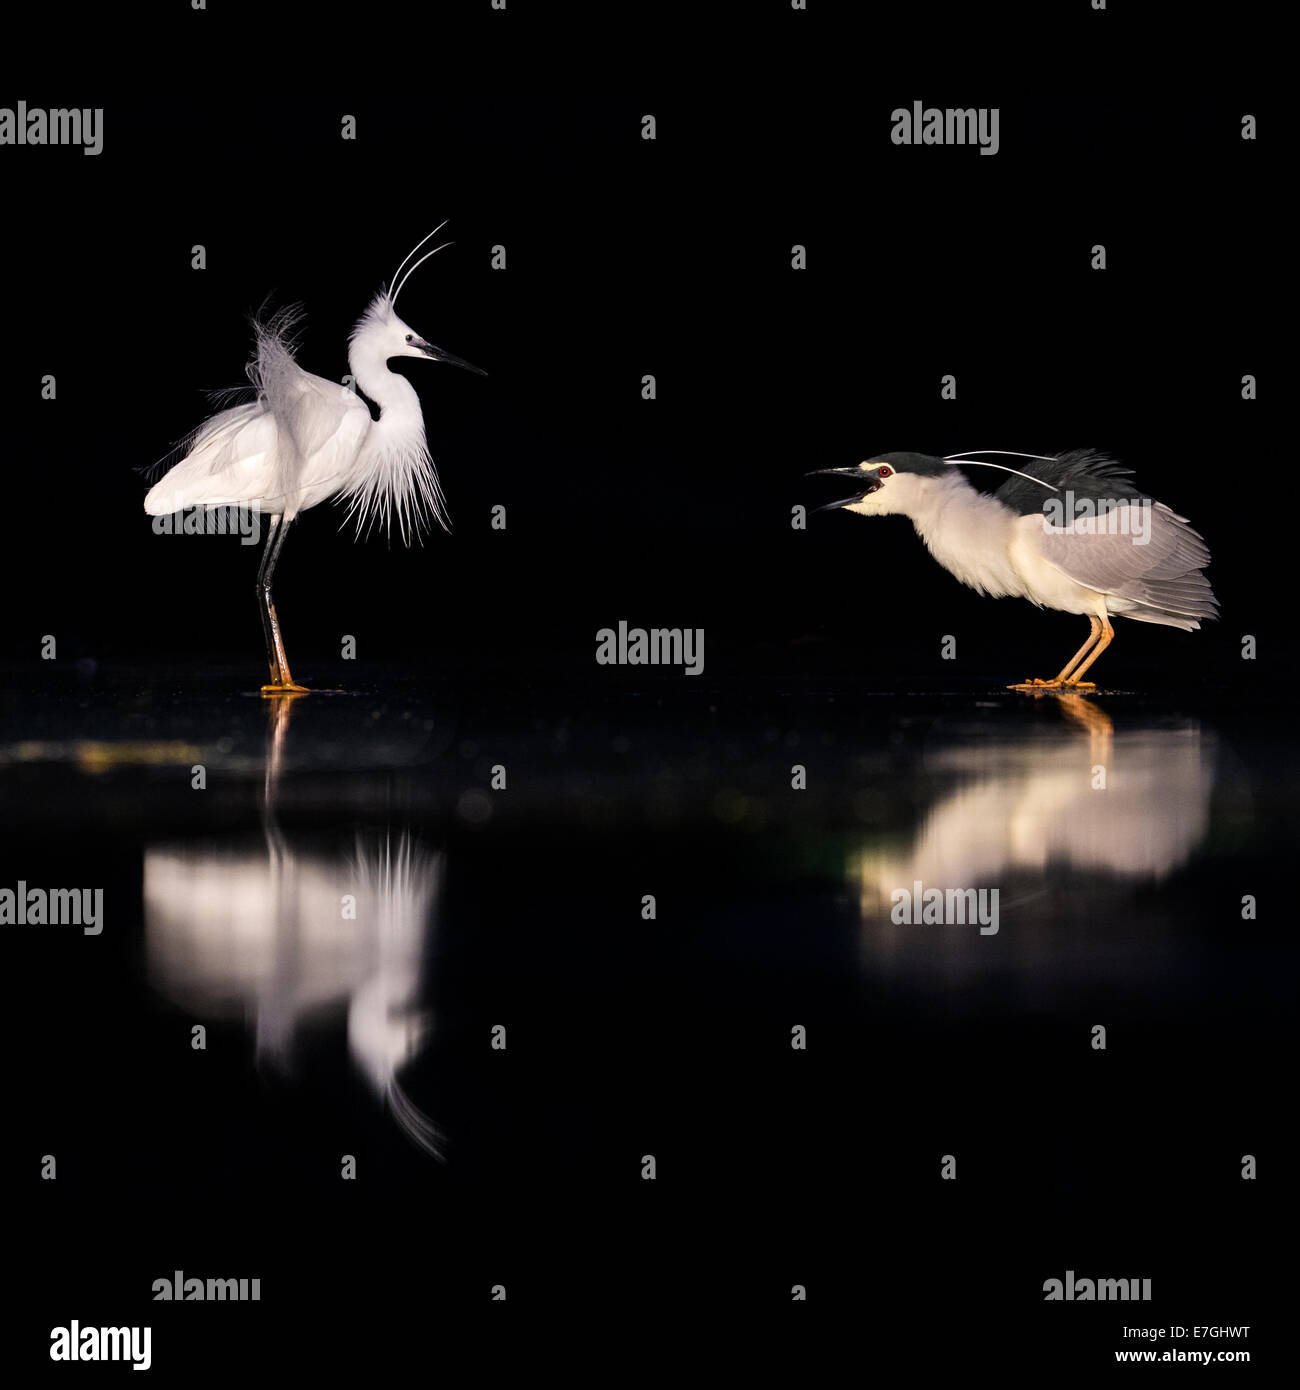 Black-crowned Night Heron (Nycticorax nycticorax) threatening a Little Egret (Egretta garzetta) at night - Stock Image